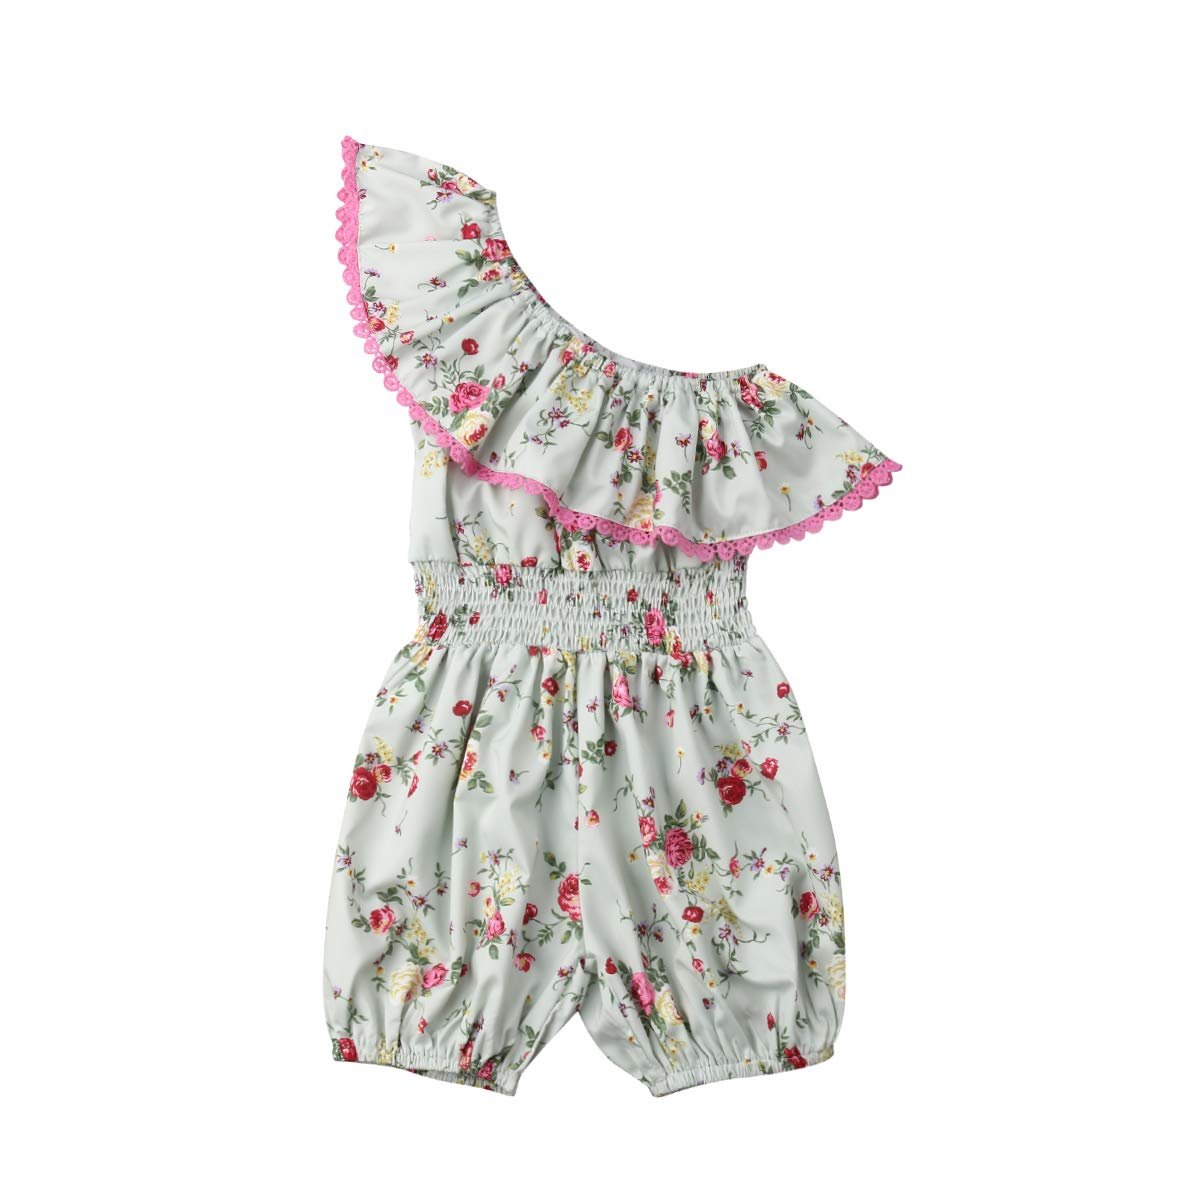 UK Toddler Kids Baby Girls Summer Clothes Flower Ruffle Romper Jumpsuit Outfits